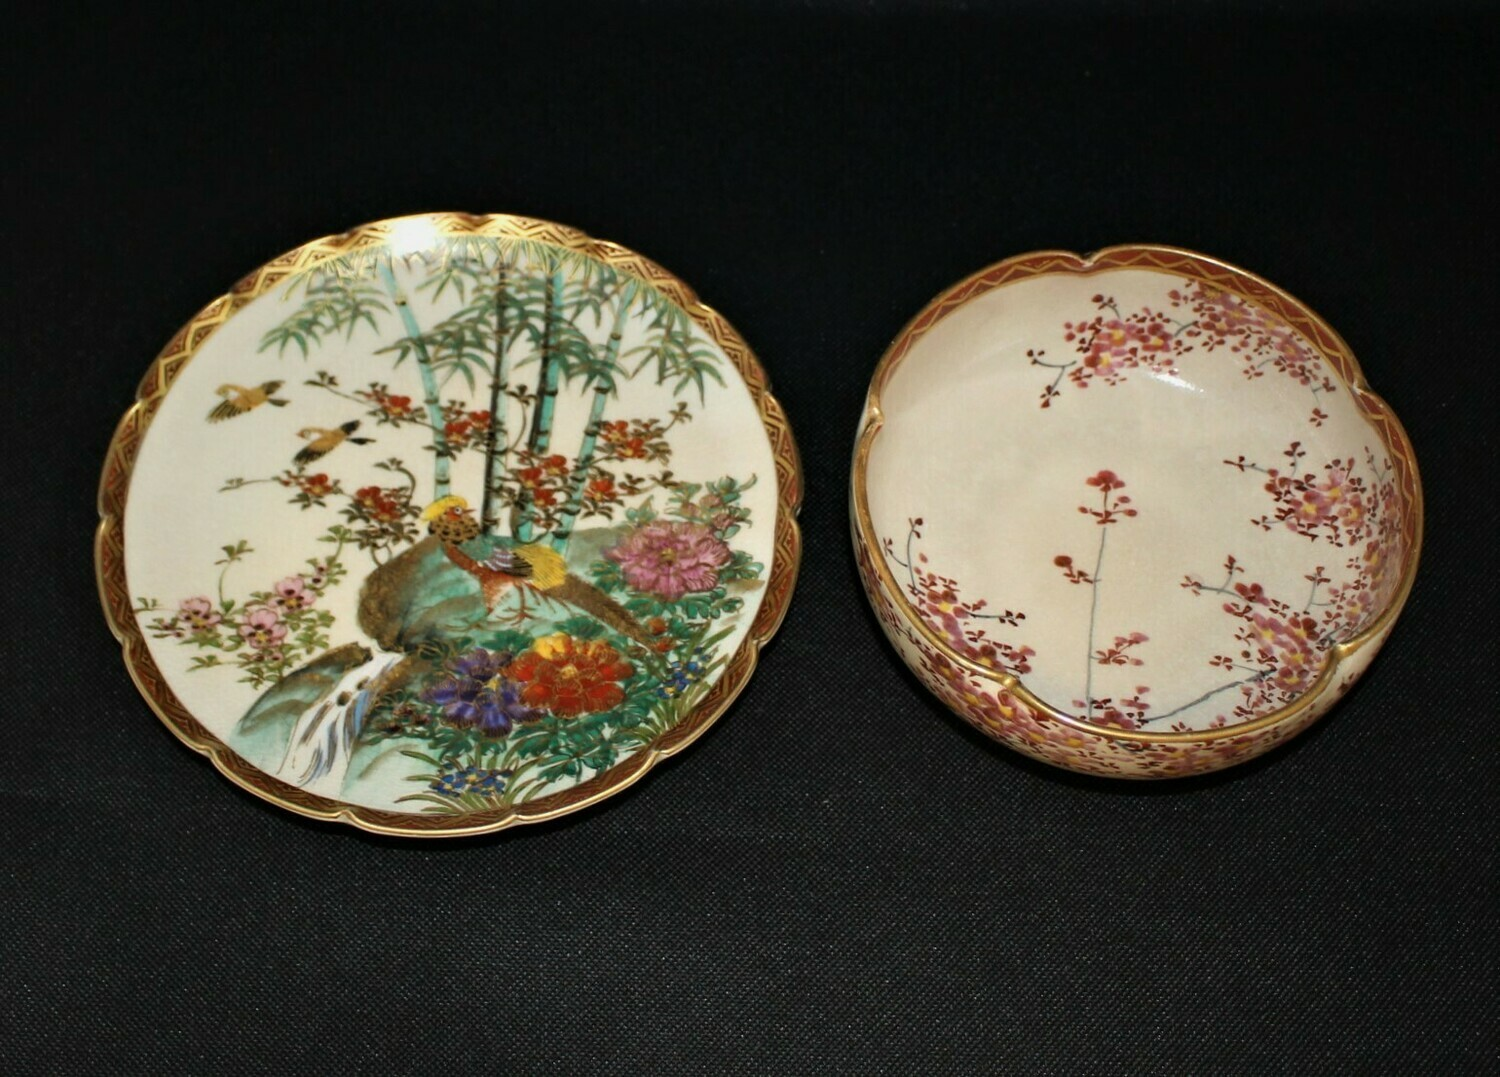 Japanese Satsuma Hand-Painted Birds & Cherry Blossom Scenery Lobed Bowl & Plate